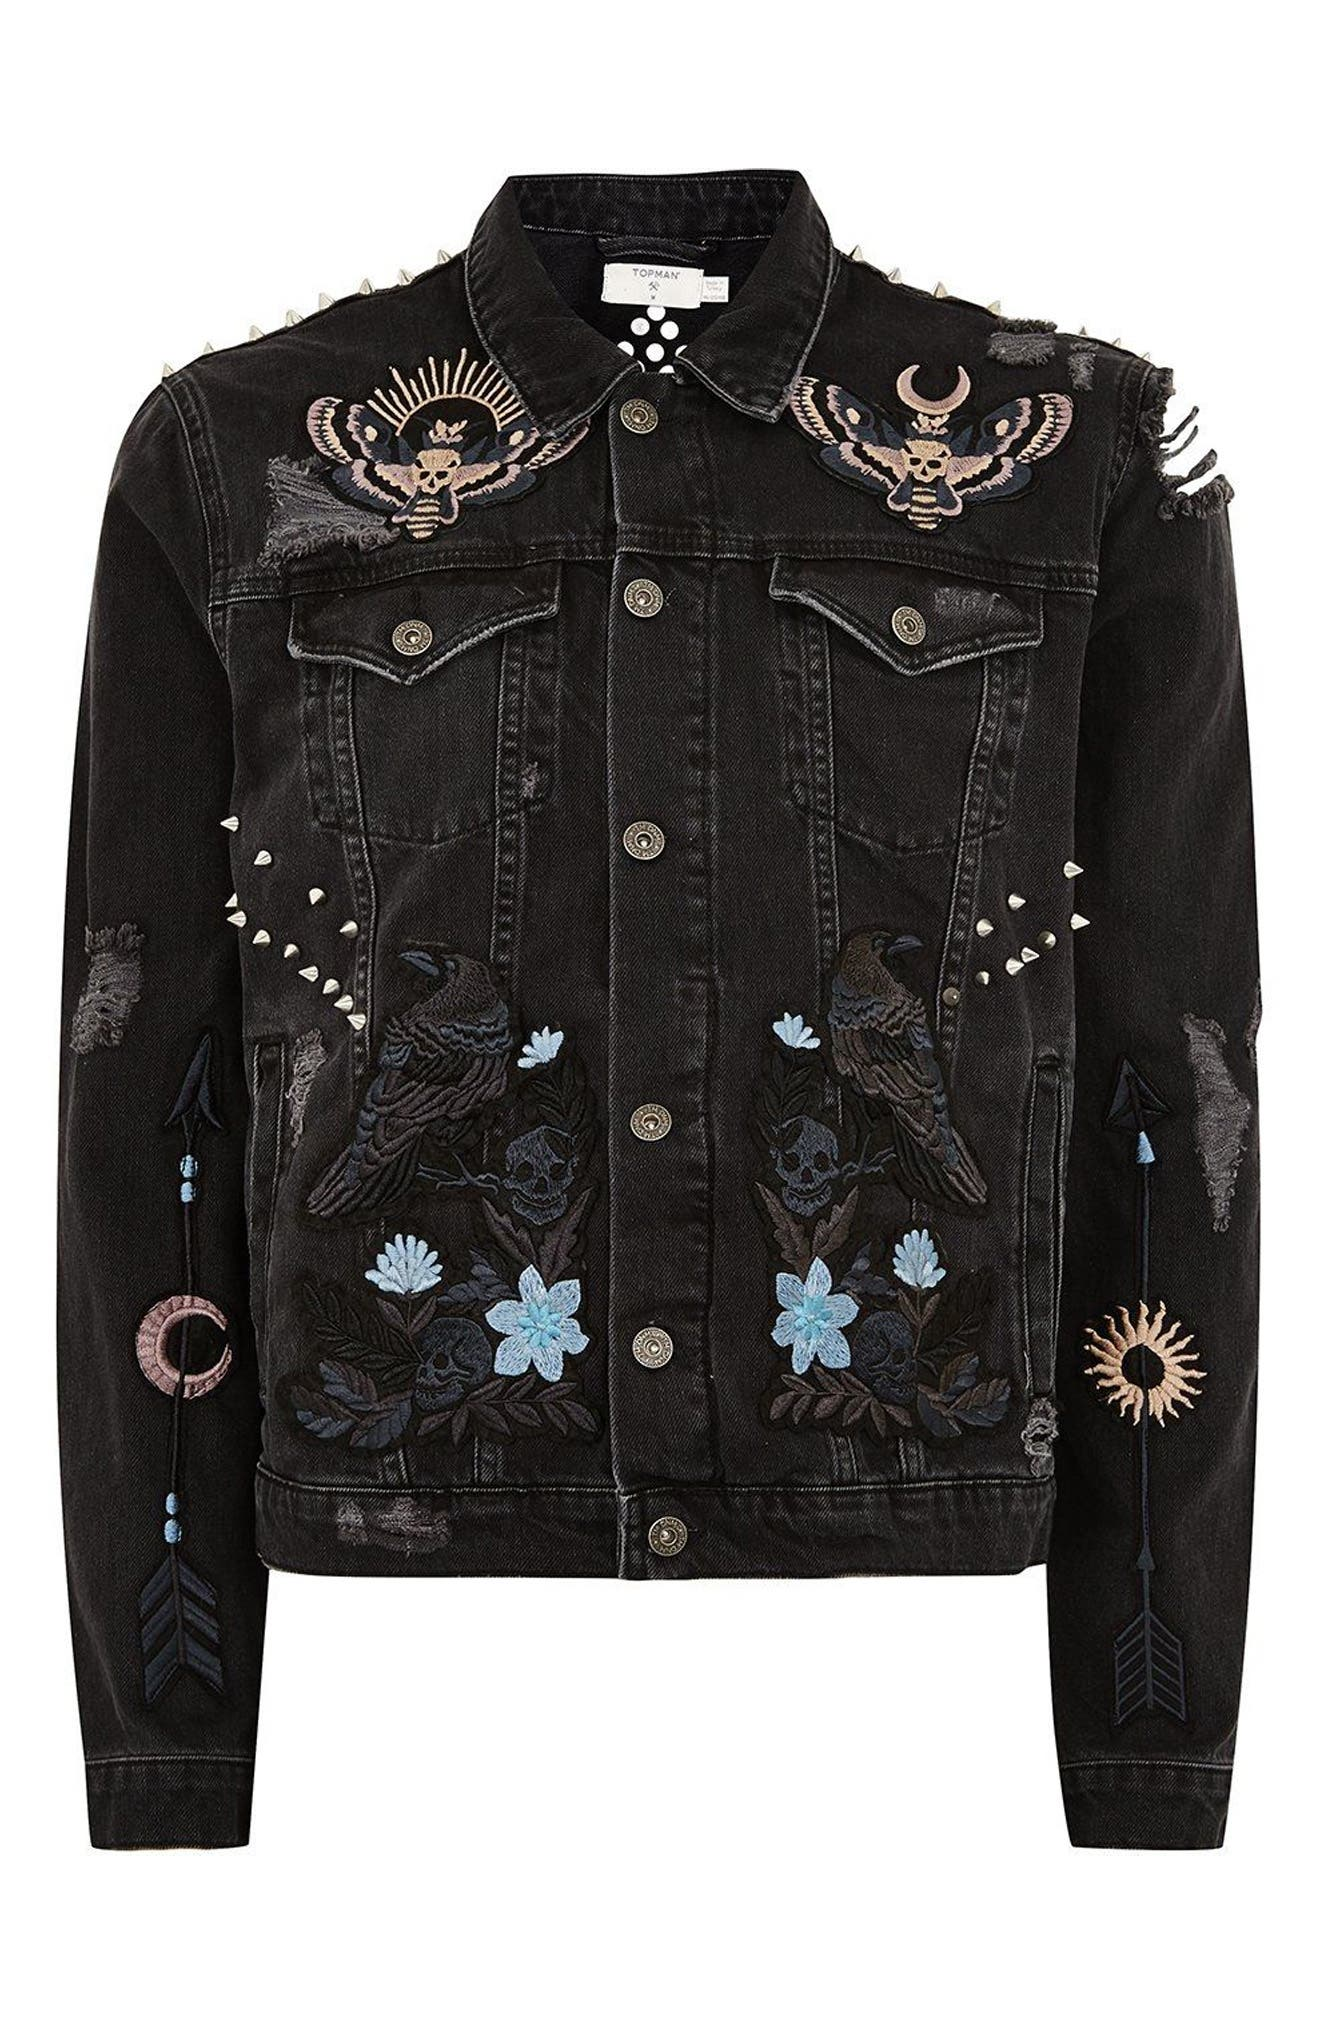 Sleepy Hollow Slim Fit Denim Jacket with Patches,                             Alternate thumbnail 4, color,                             001